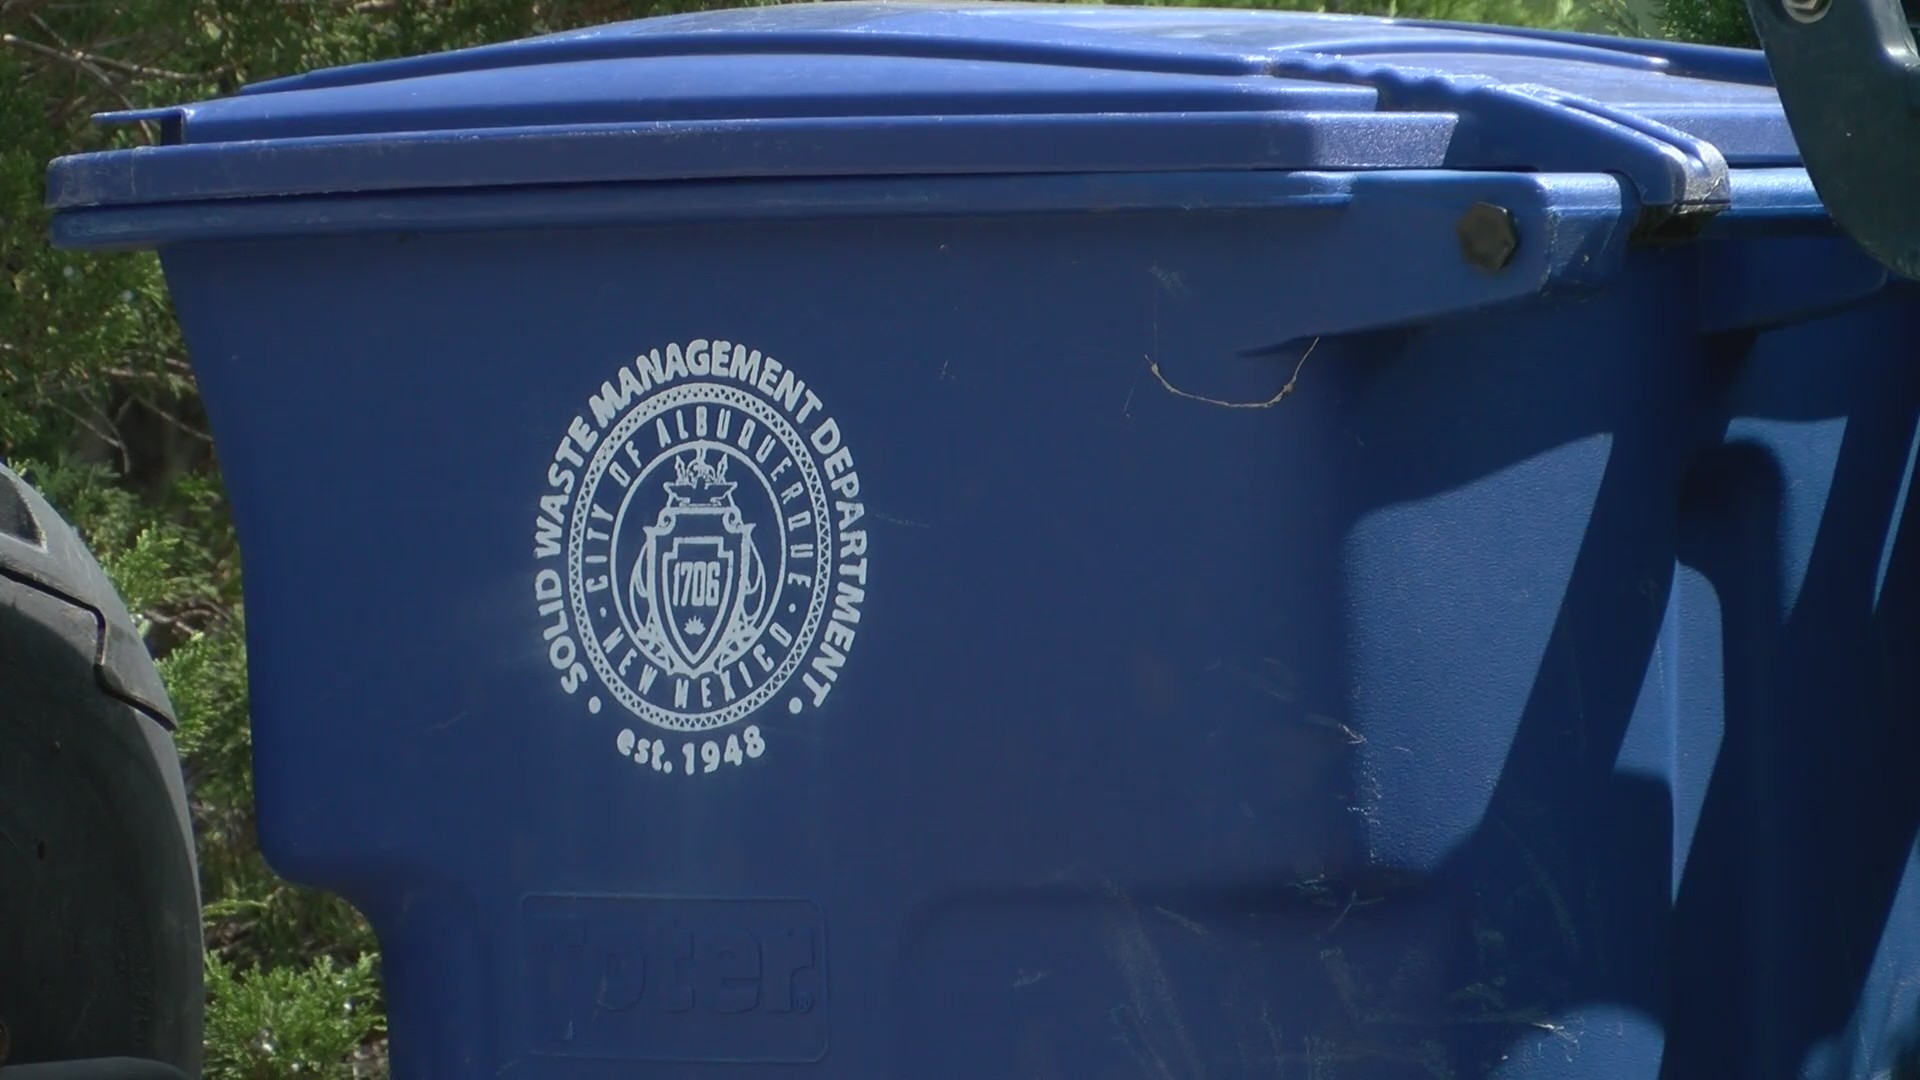 Albuquerque Trash Pickup Christmas 2021 City Of Albuquerque Trash Recycling Will Not Be Collected On Thanksgiving Krqe News 13